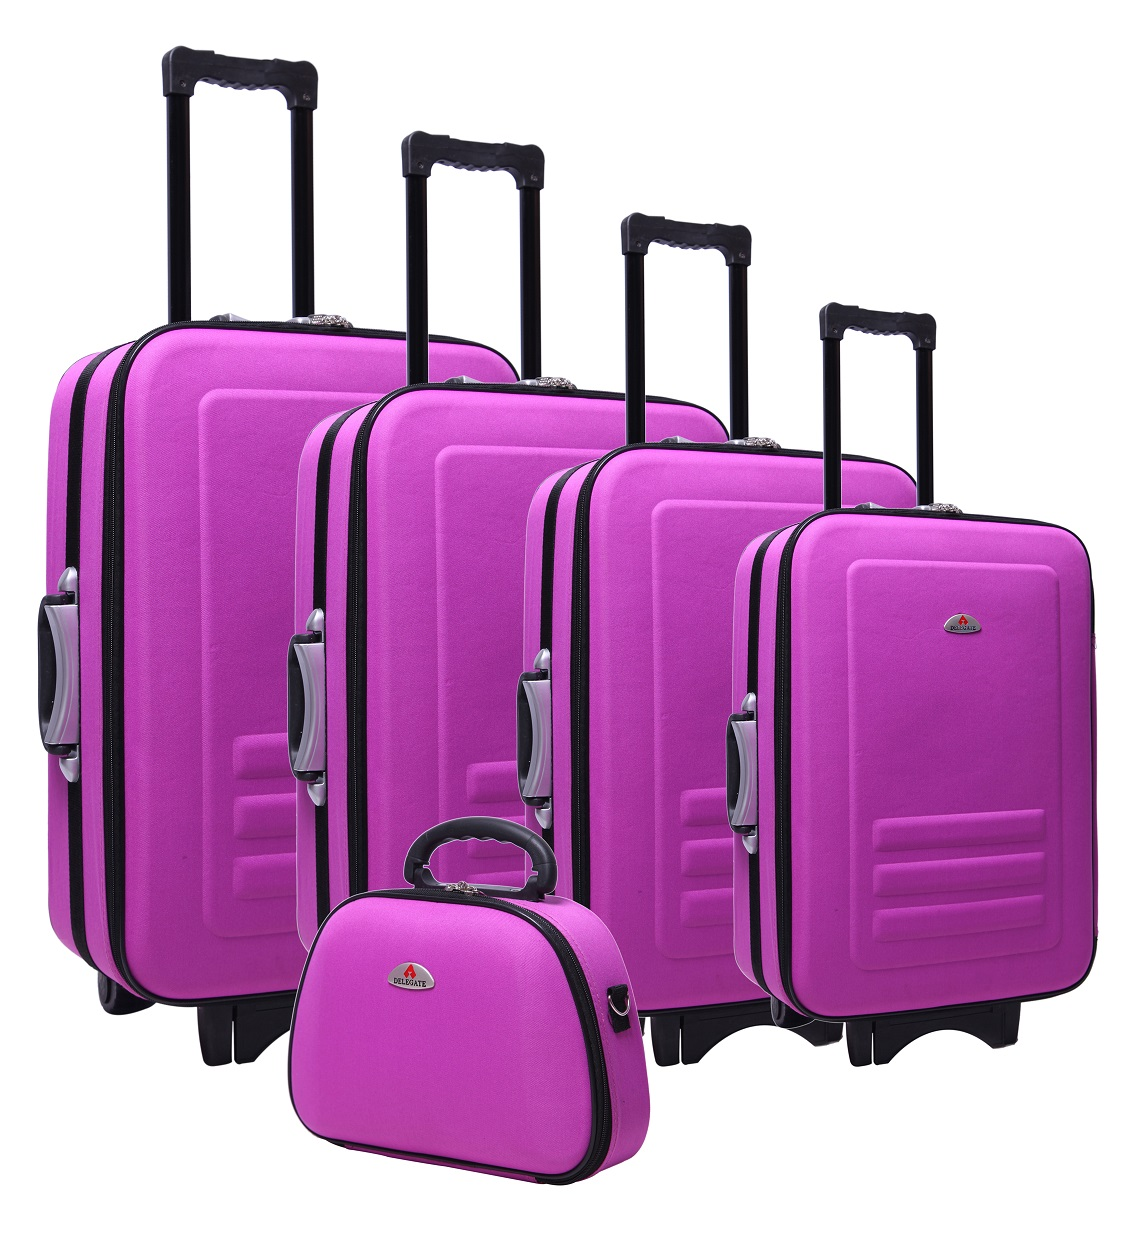 5pc Suitcase Trolley Travel Bag Luggage Set PURPLE  Z2409